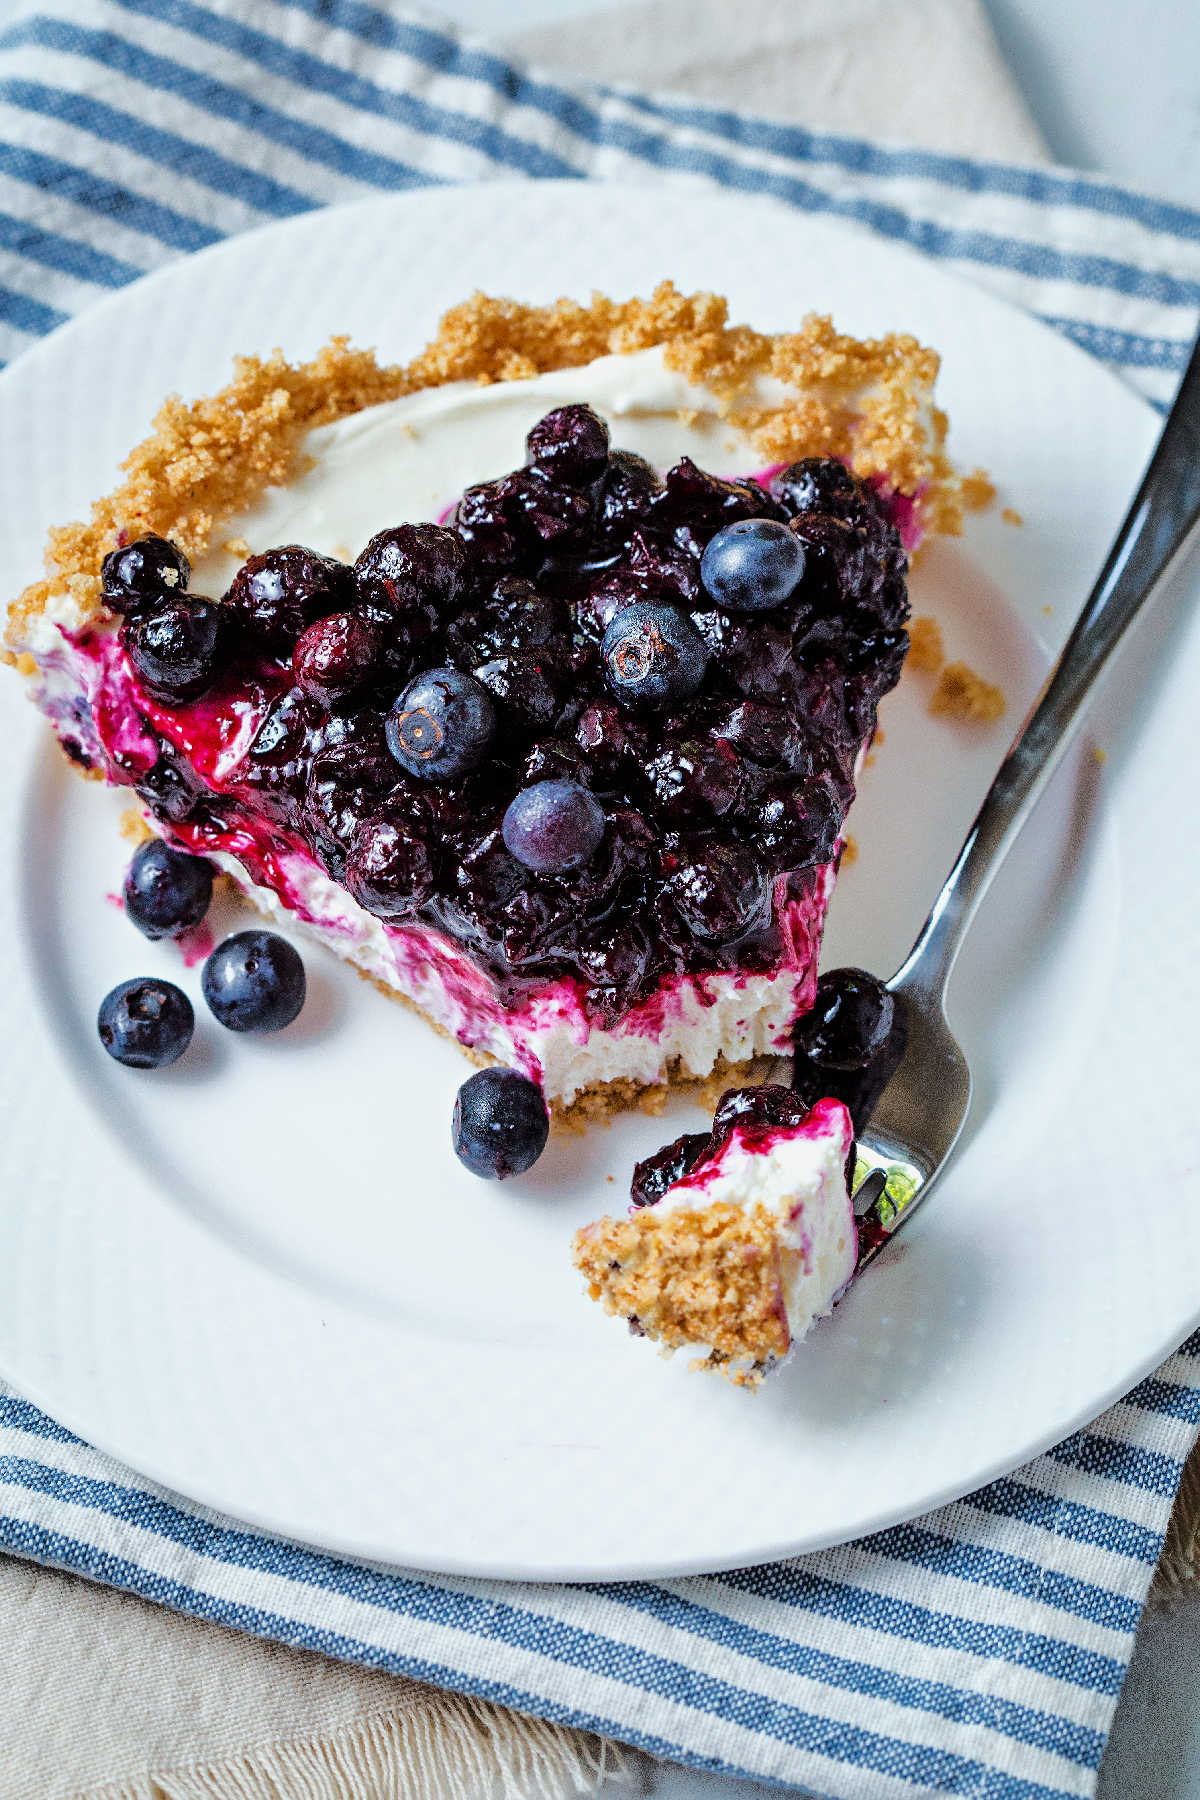 a bite of no bake blueberry cheesecake on a fork alongside a slice on a white plate.